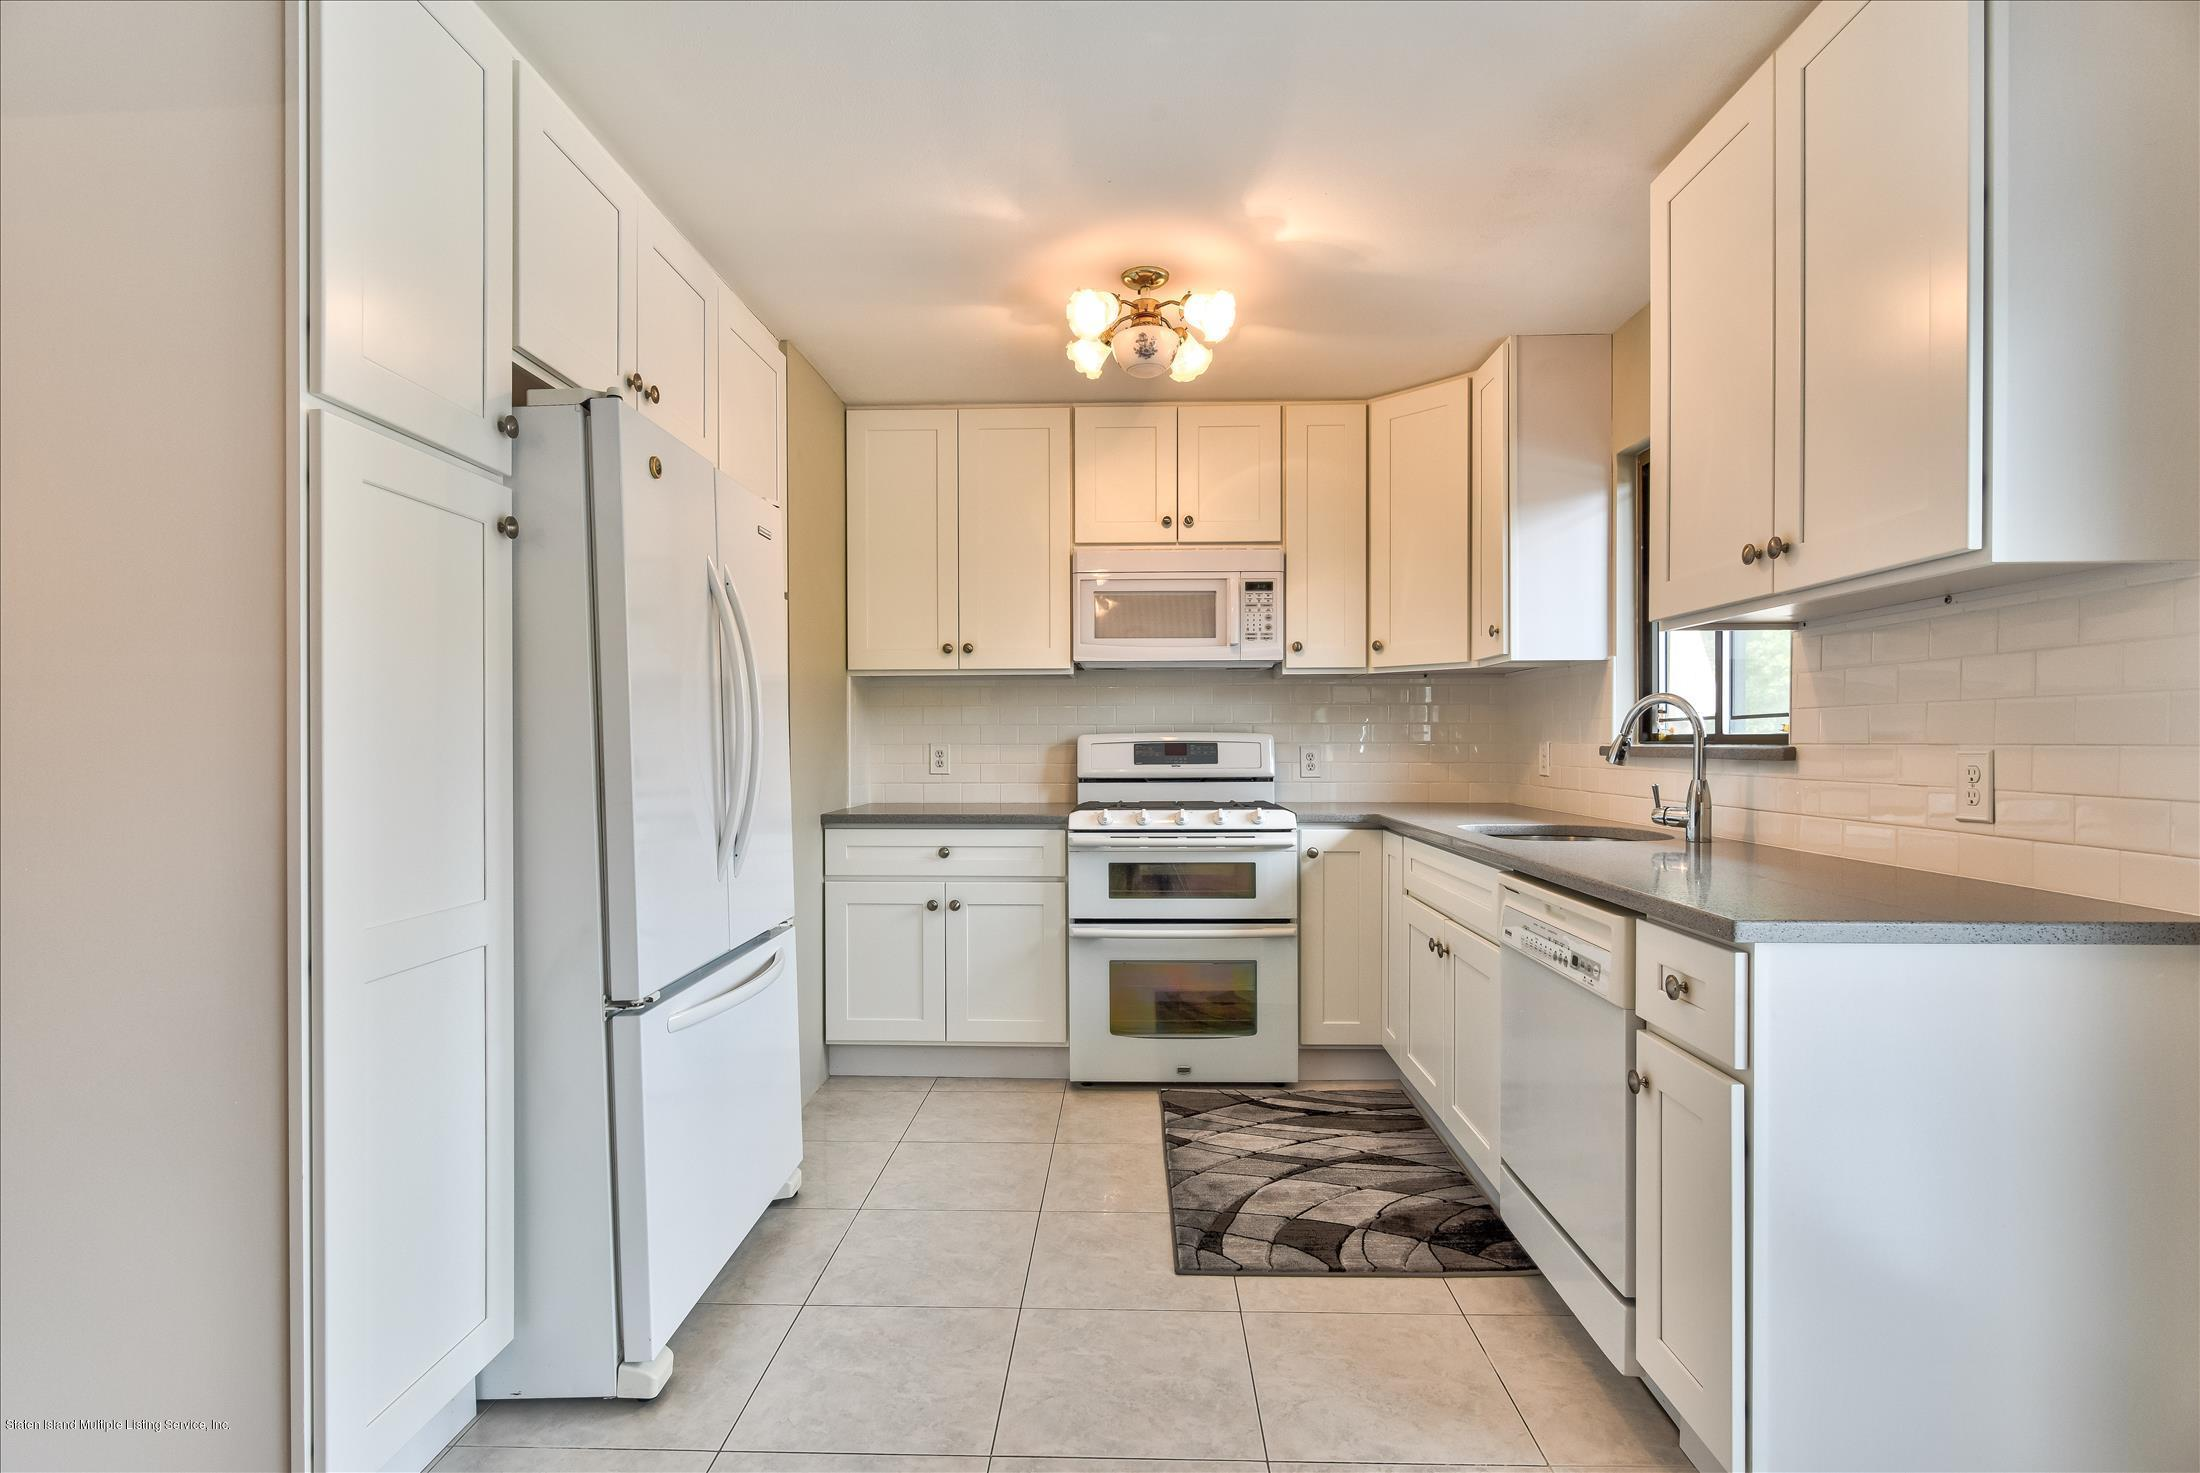 Single Family - Attached 833 Rensselaer Avenue  Staten Island, NY 10309, MLS-1125461-22